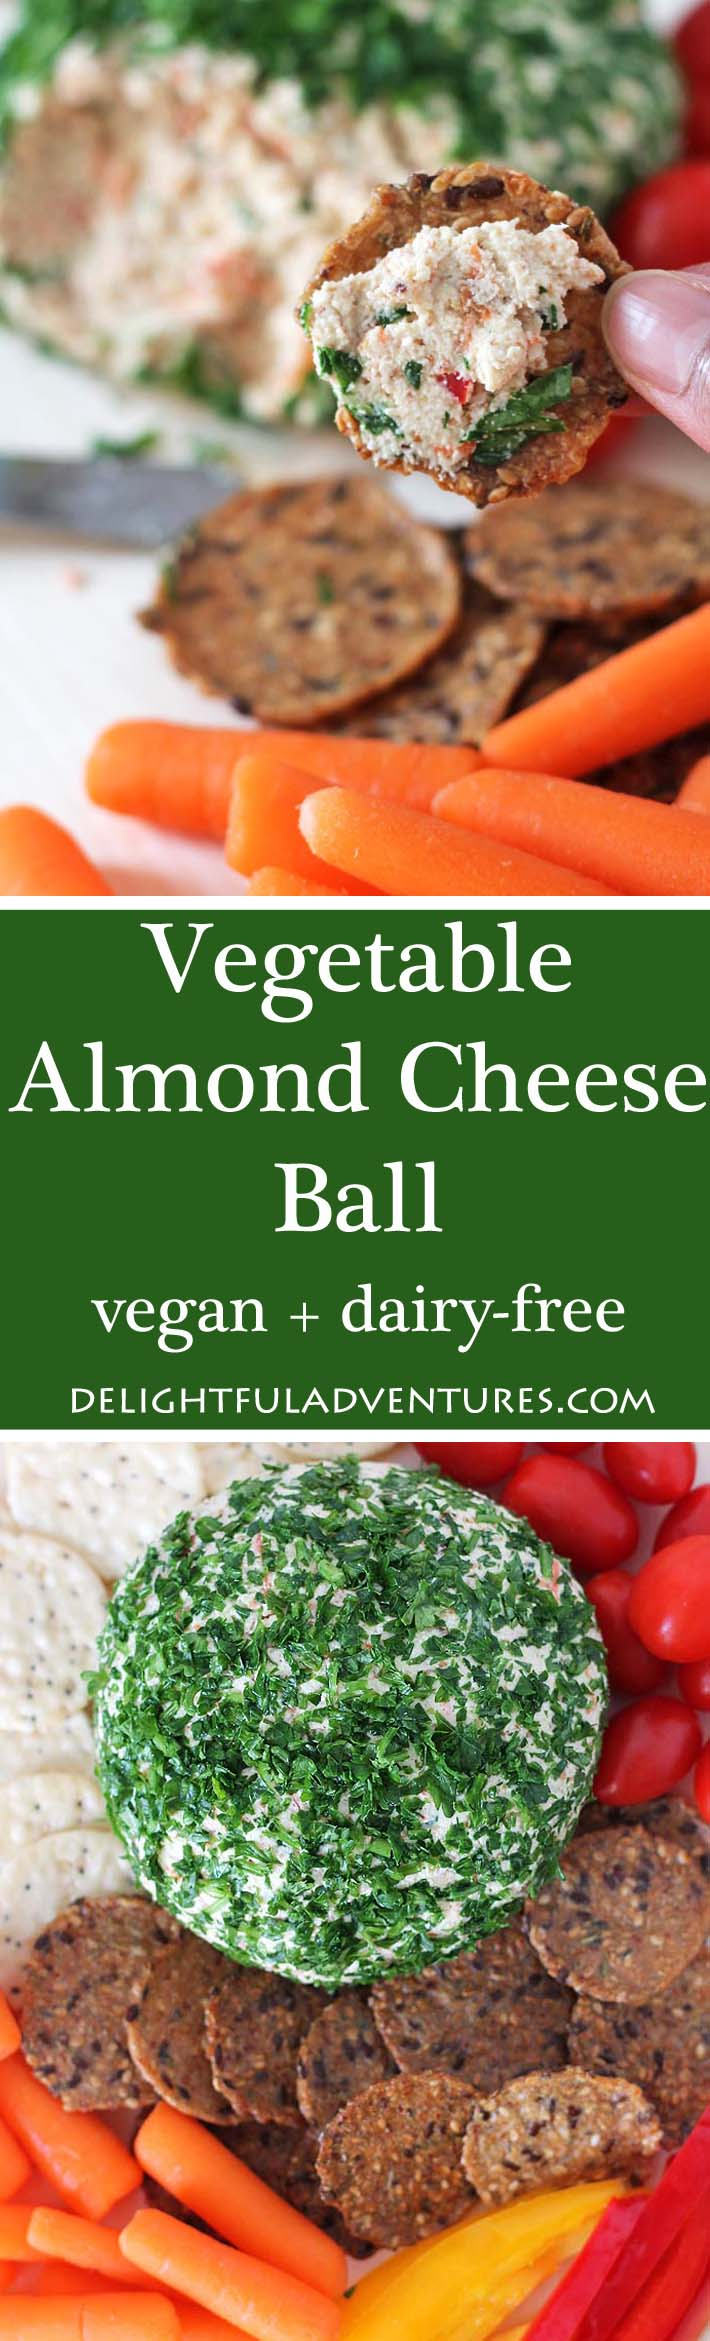 A cheesy vegan almond cheese makes up the base for this savoury,  delicious vegan vegetable almond cheese ball that's great for snacking on or for parties. #vegancheeseball #vegancheese #almondcheese #veganalmondcheese